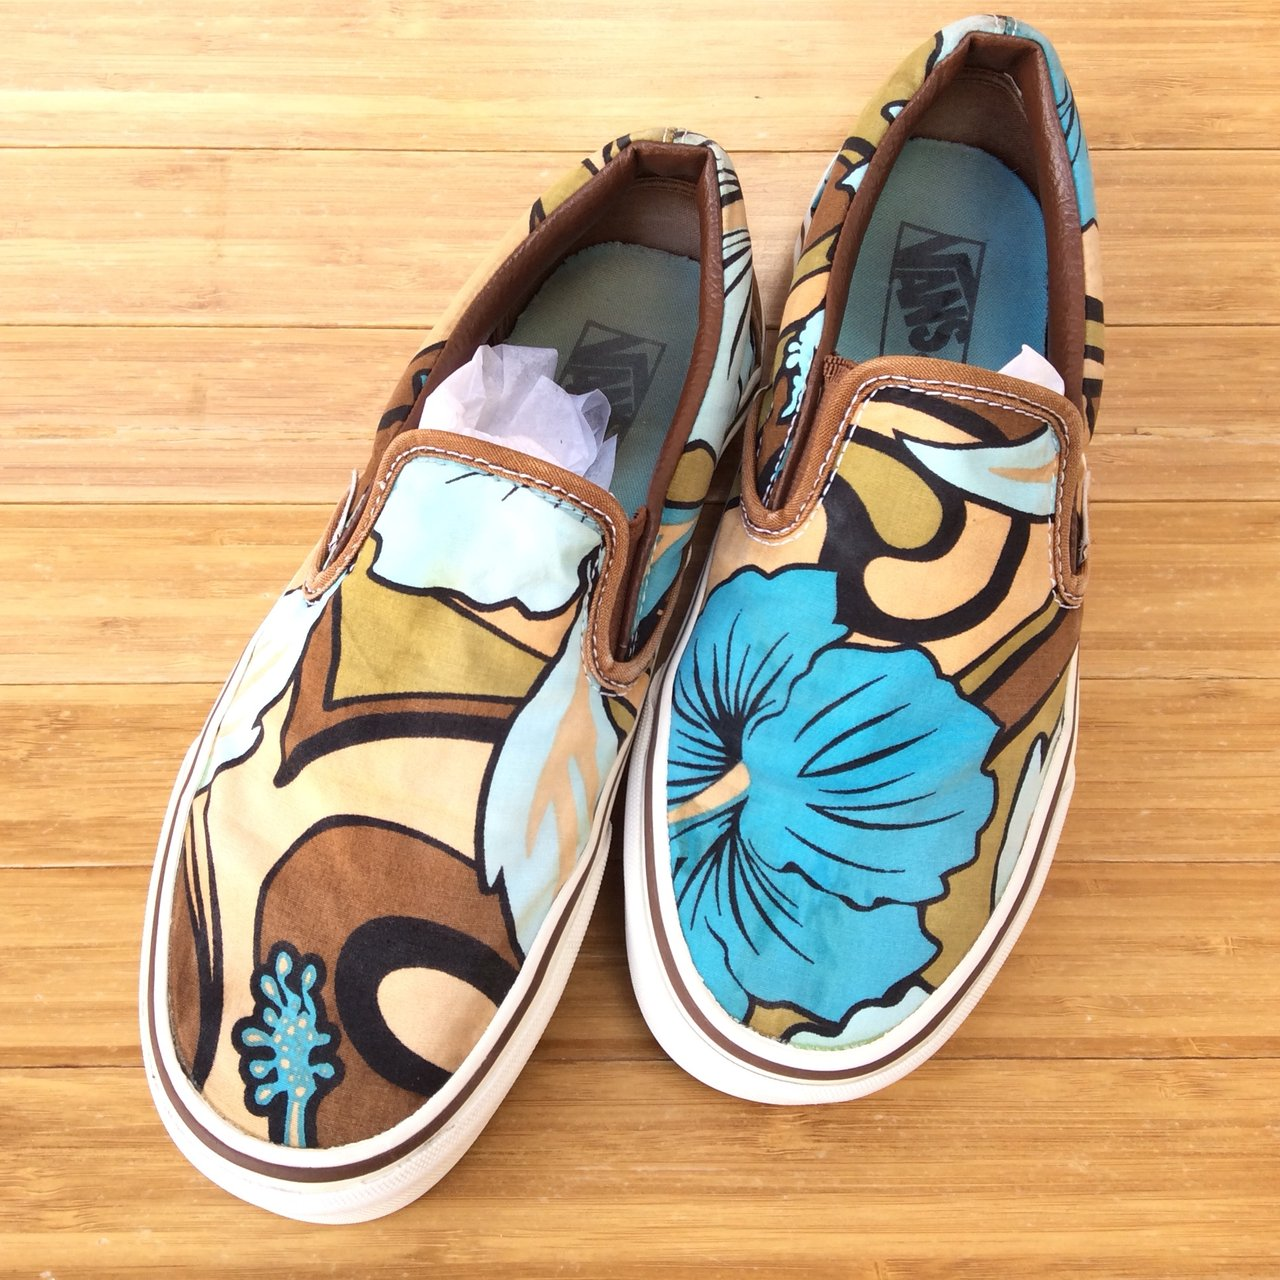 Vans Classic Slip-on Shoes Ultra Rare Hawaiian Aloha Print 66a16c077